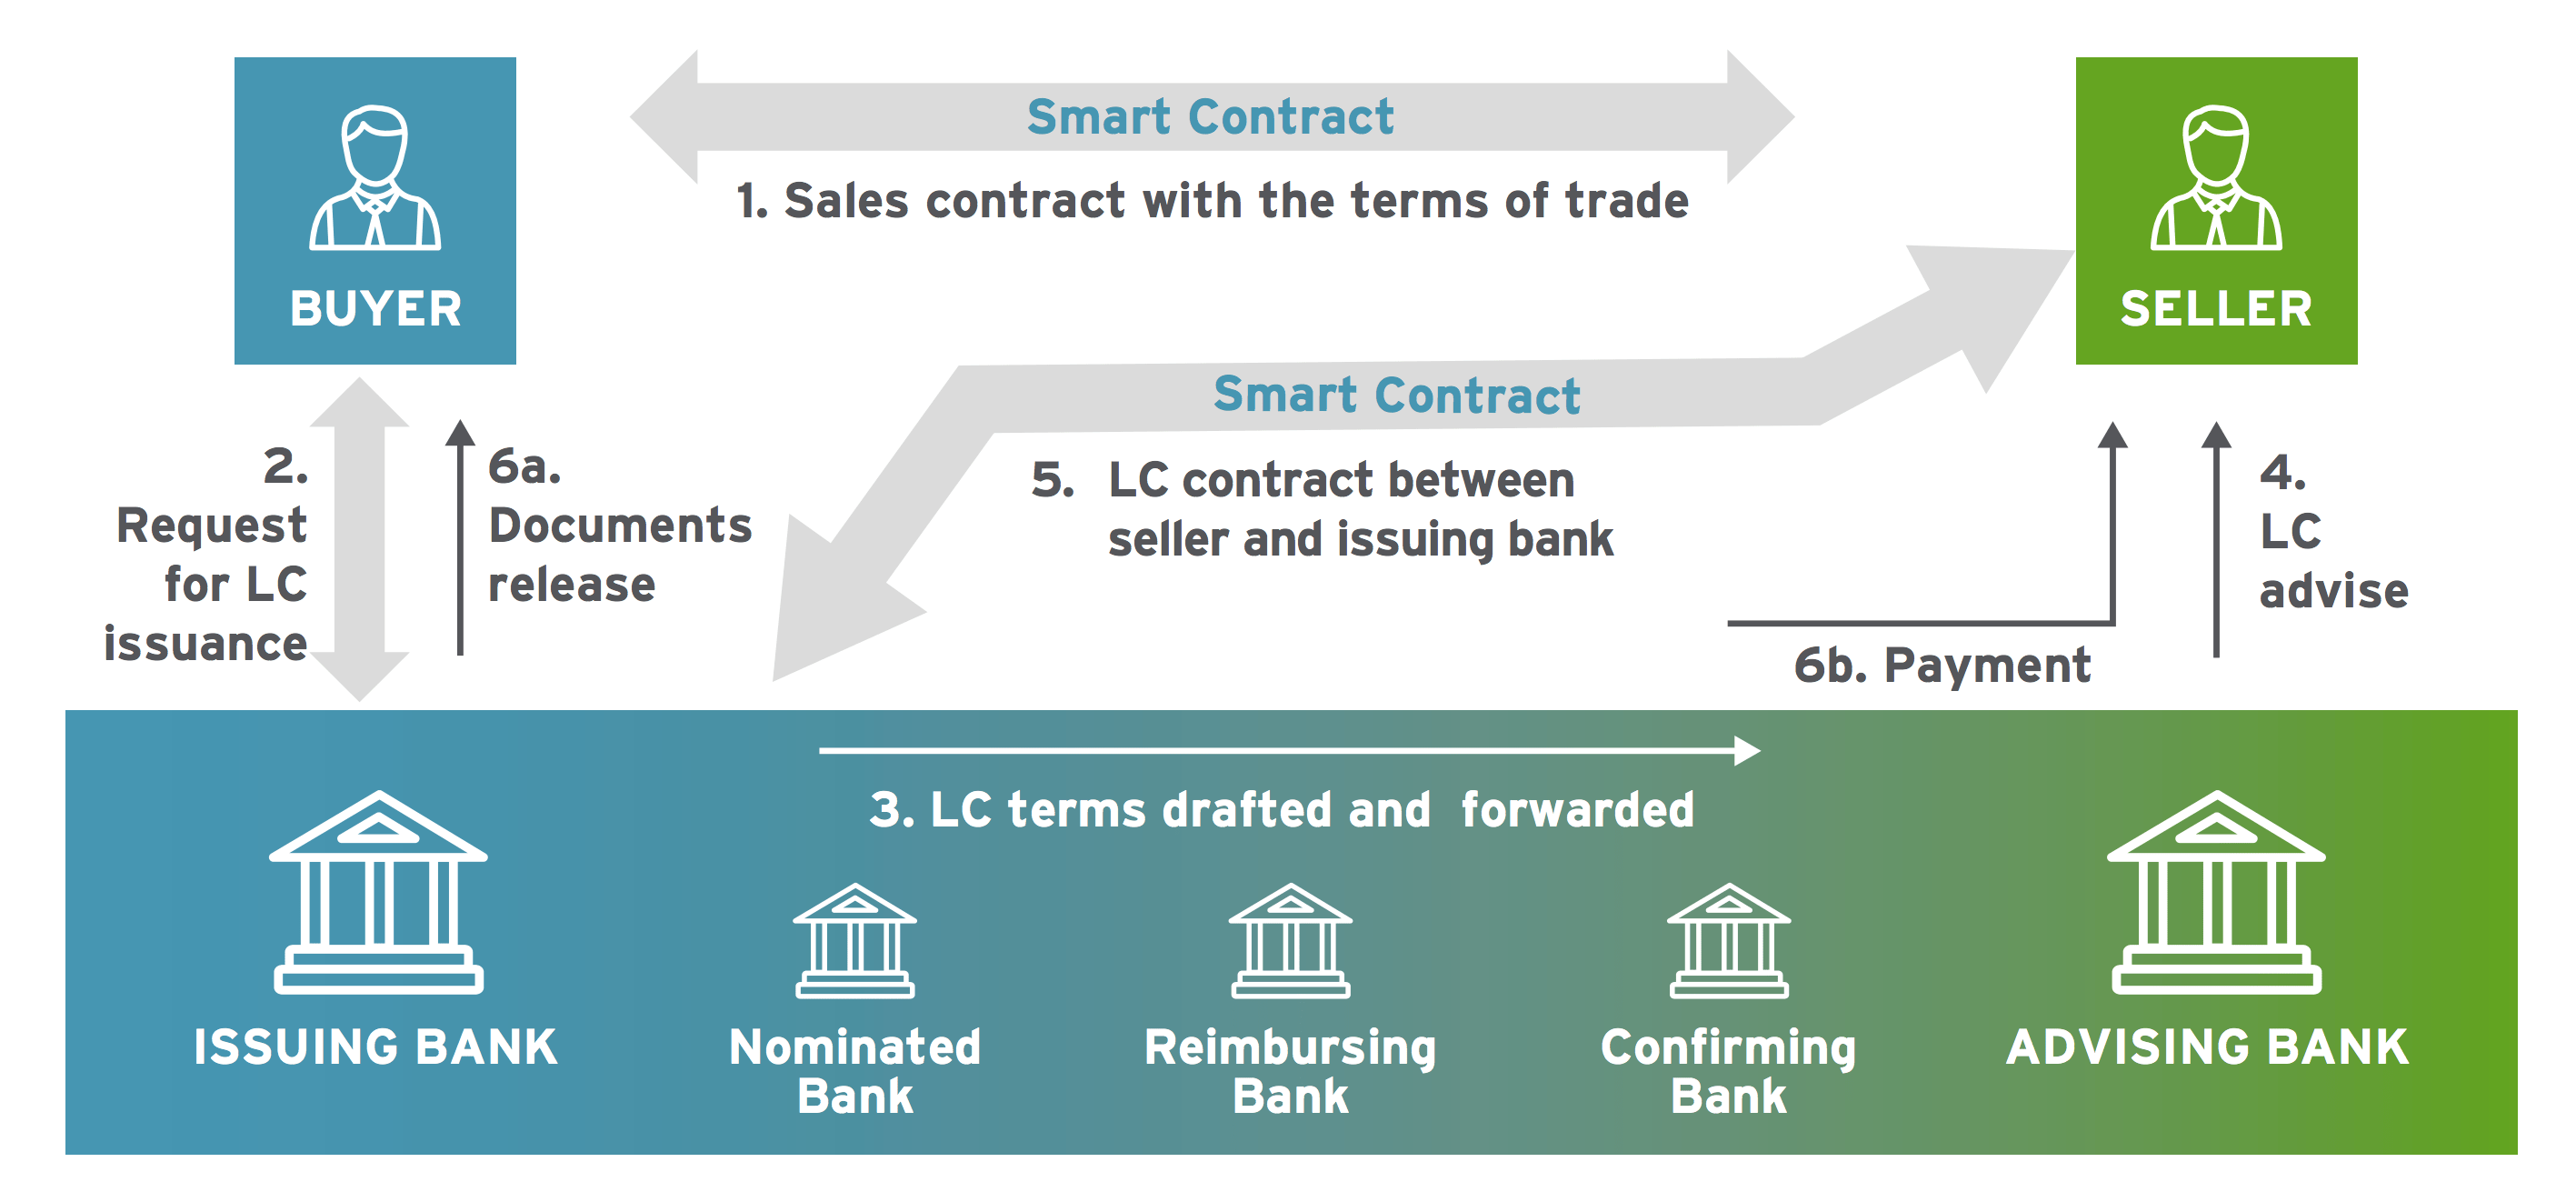 How blockchain works to securely transfer funds from selller to buyer